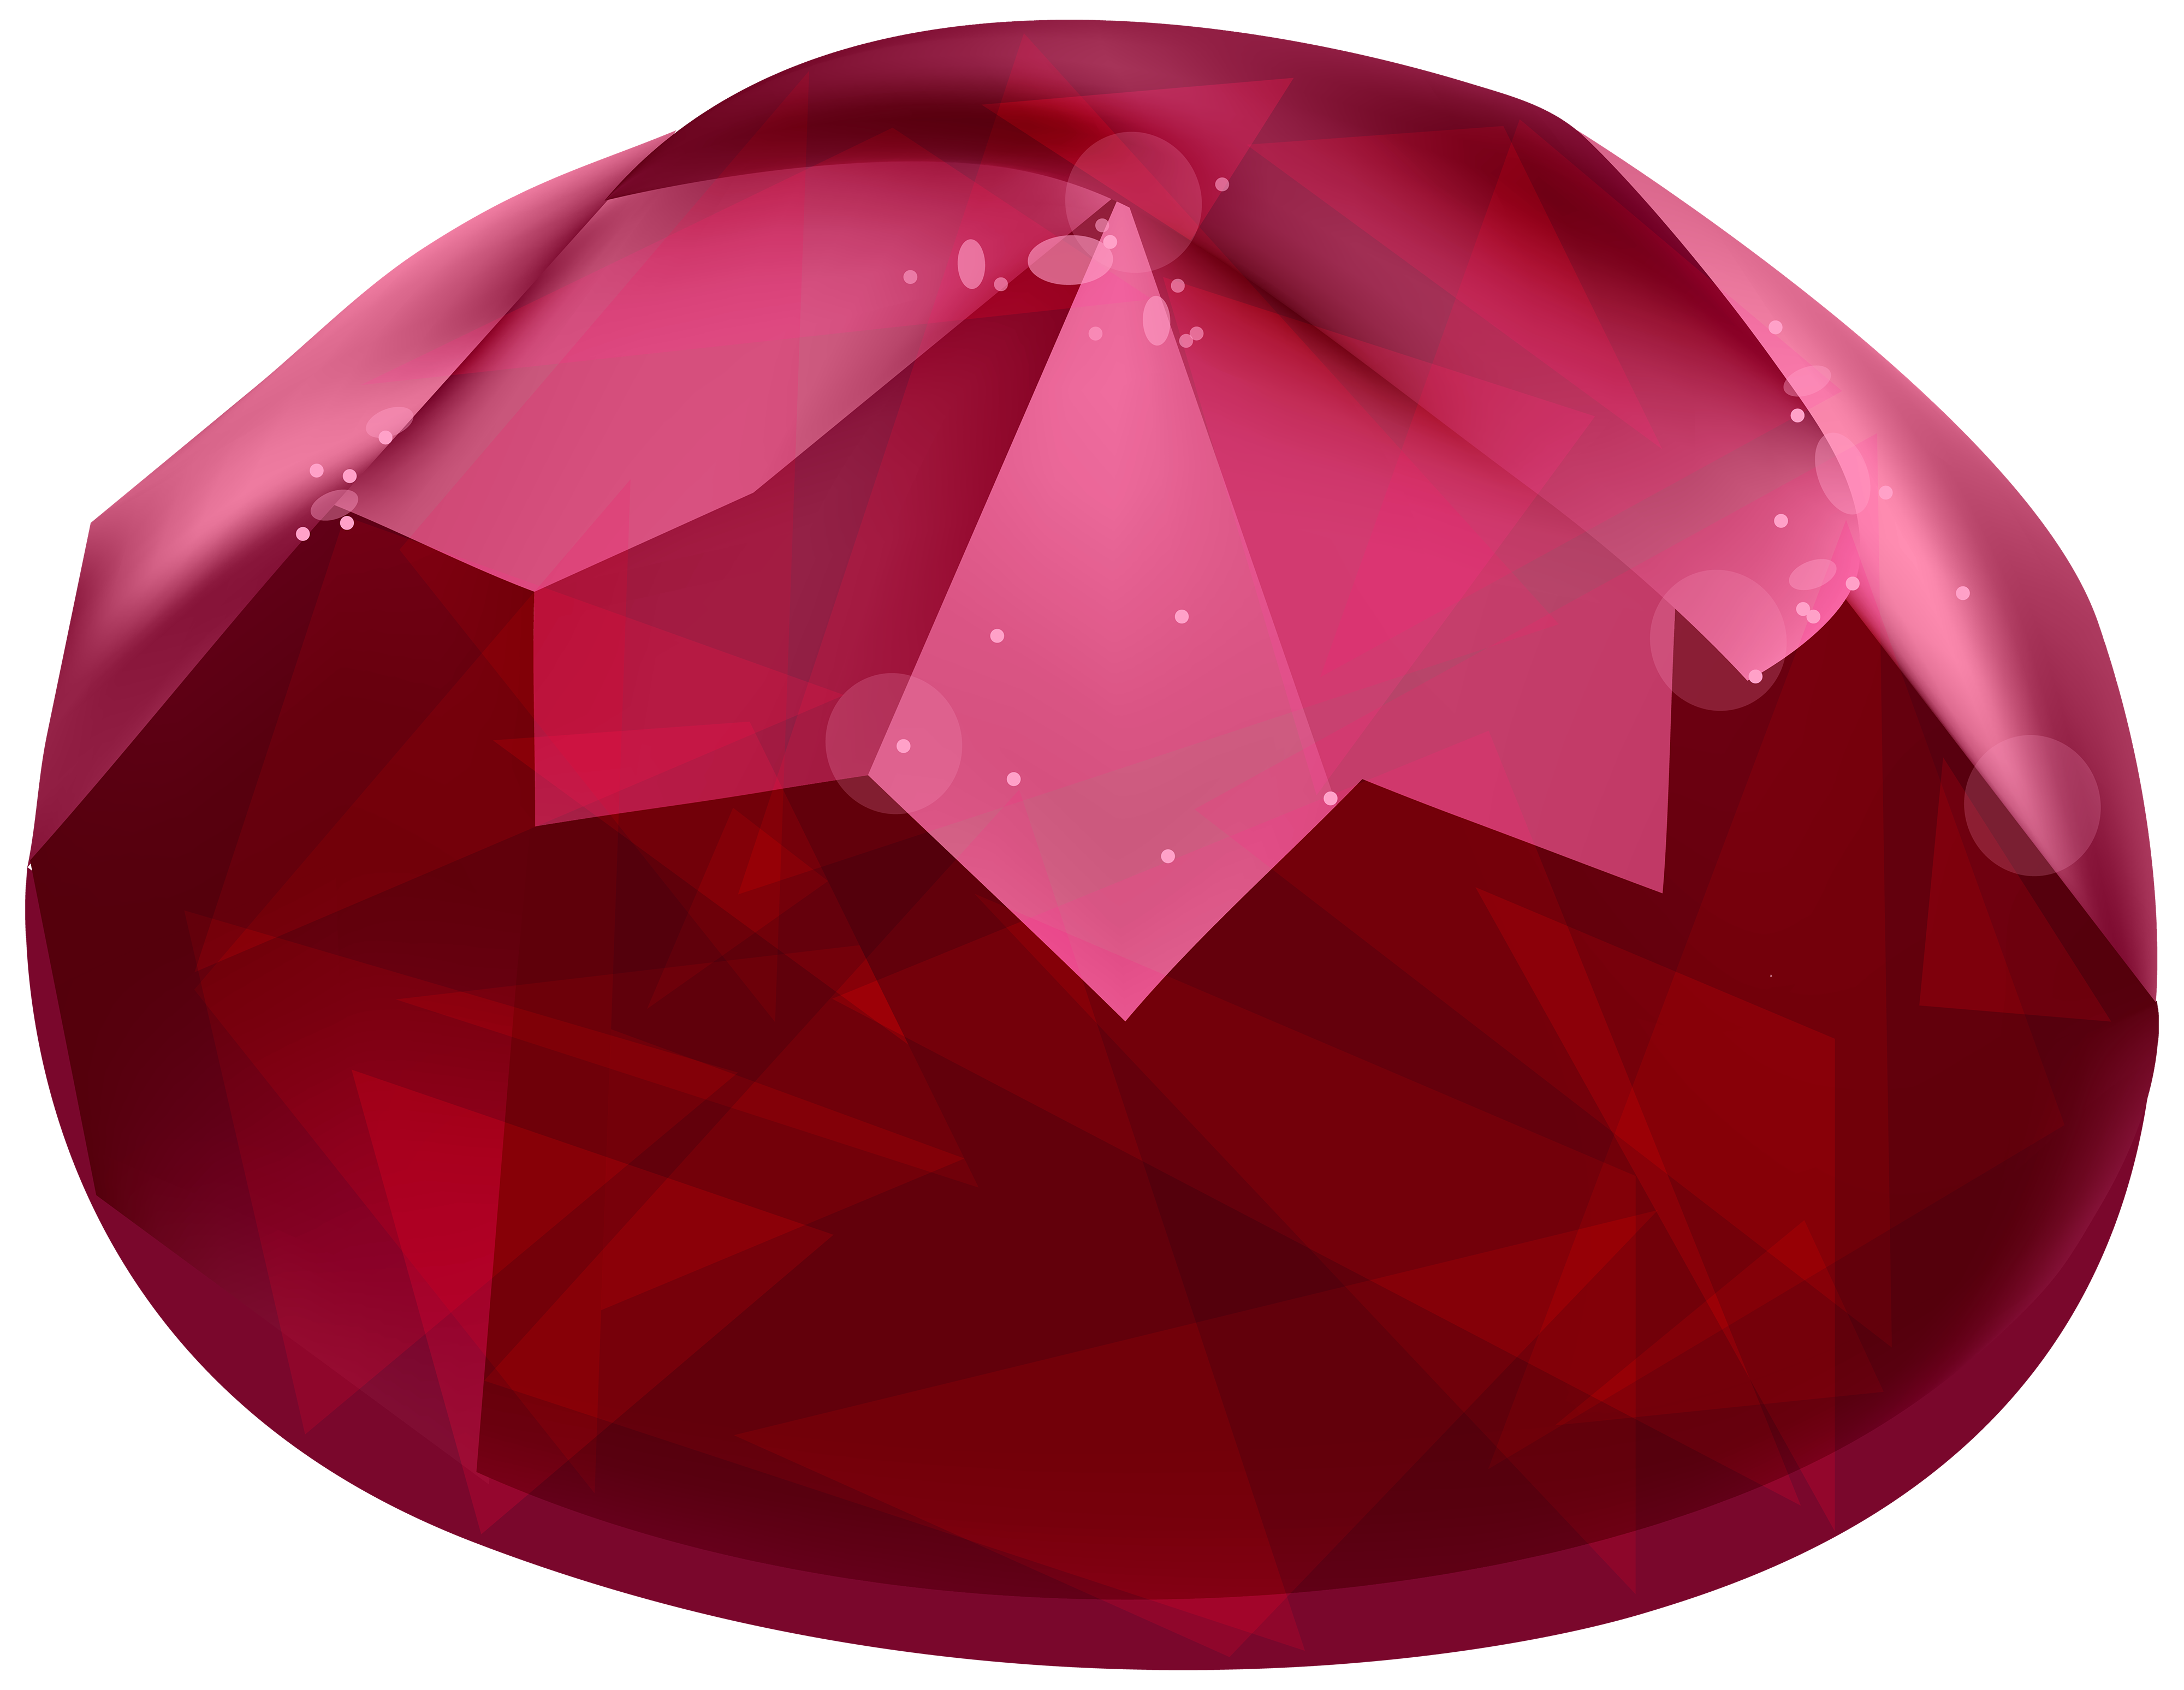 Gem clipart circle. Red diamond png best